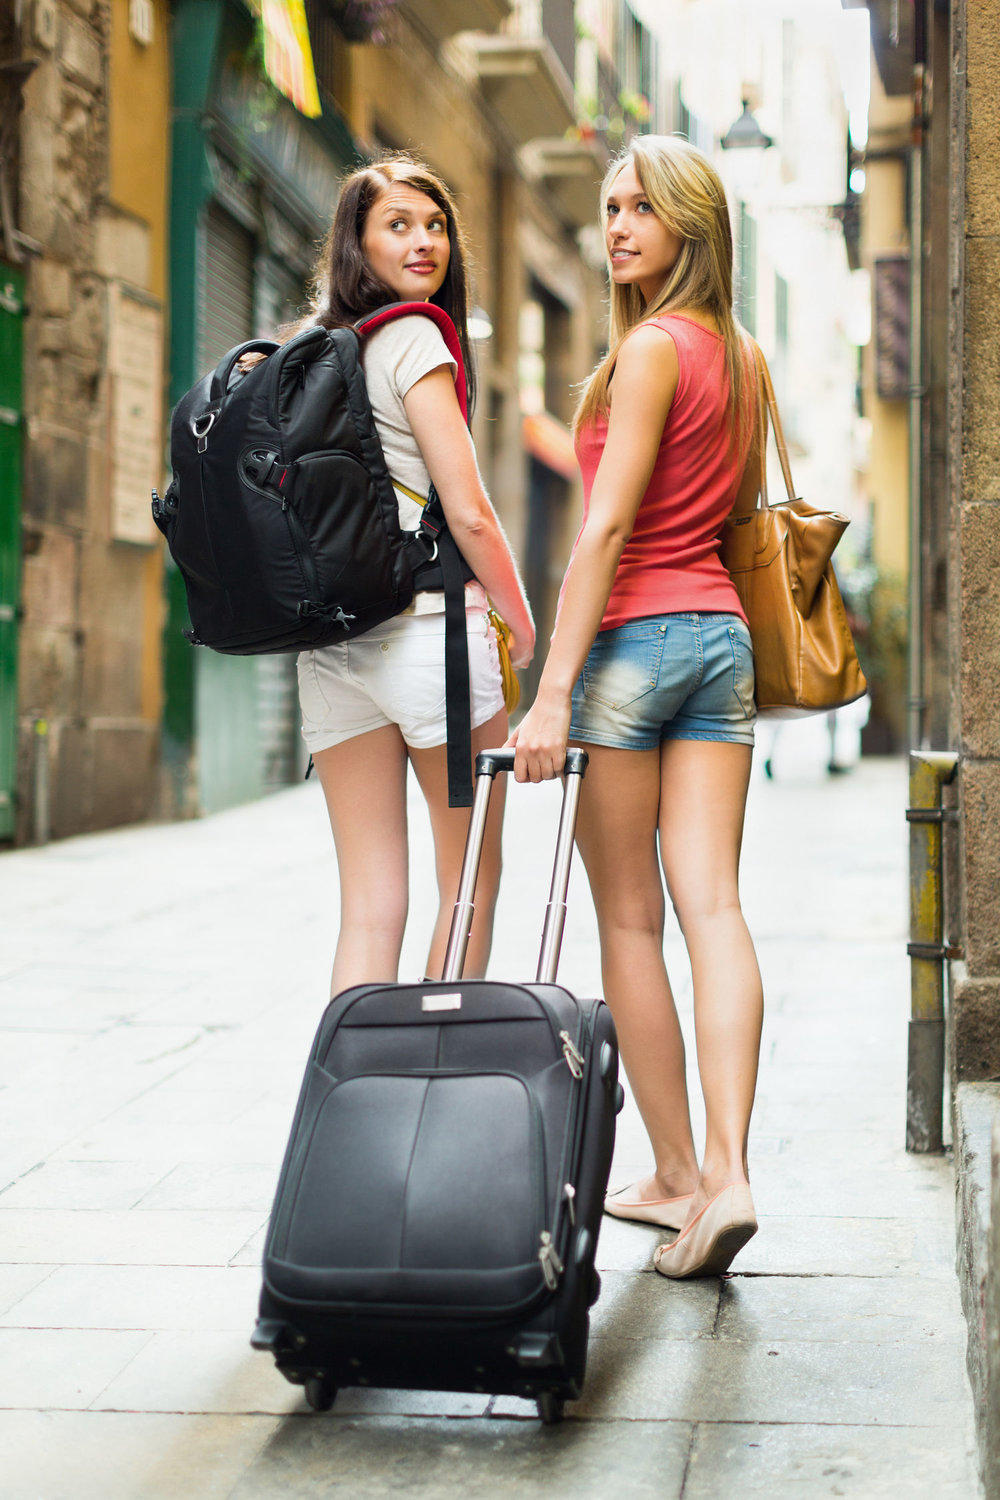 "href=""https://www.freepik.com/free-photo/two-beautiful-women-with-luggage_1474420.htm  Designed by Freepik"